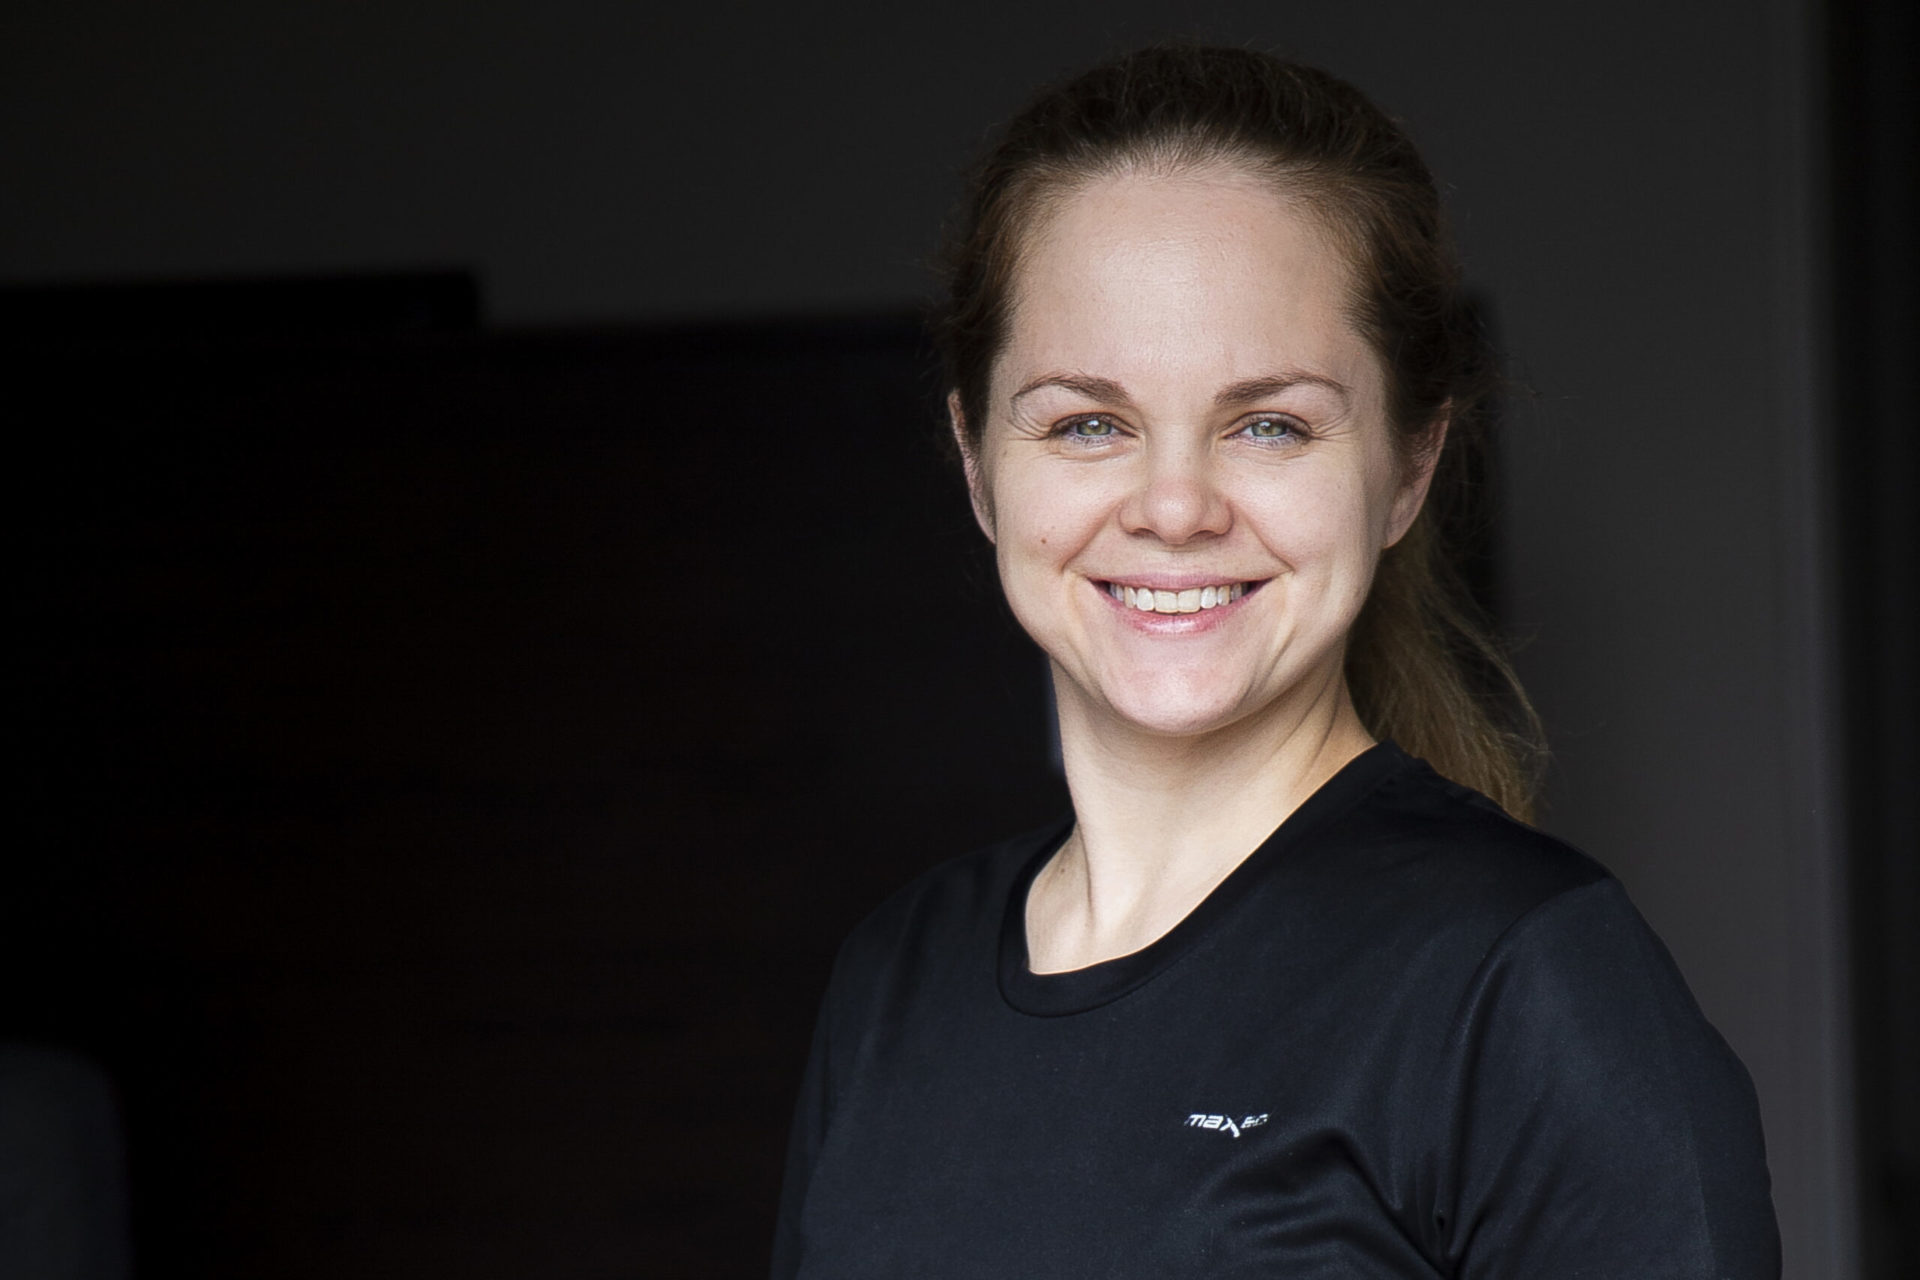 Chandelle Lombard Physiotherapy Business Branding Shoot